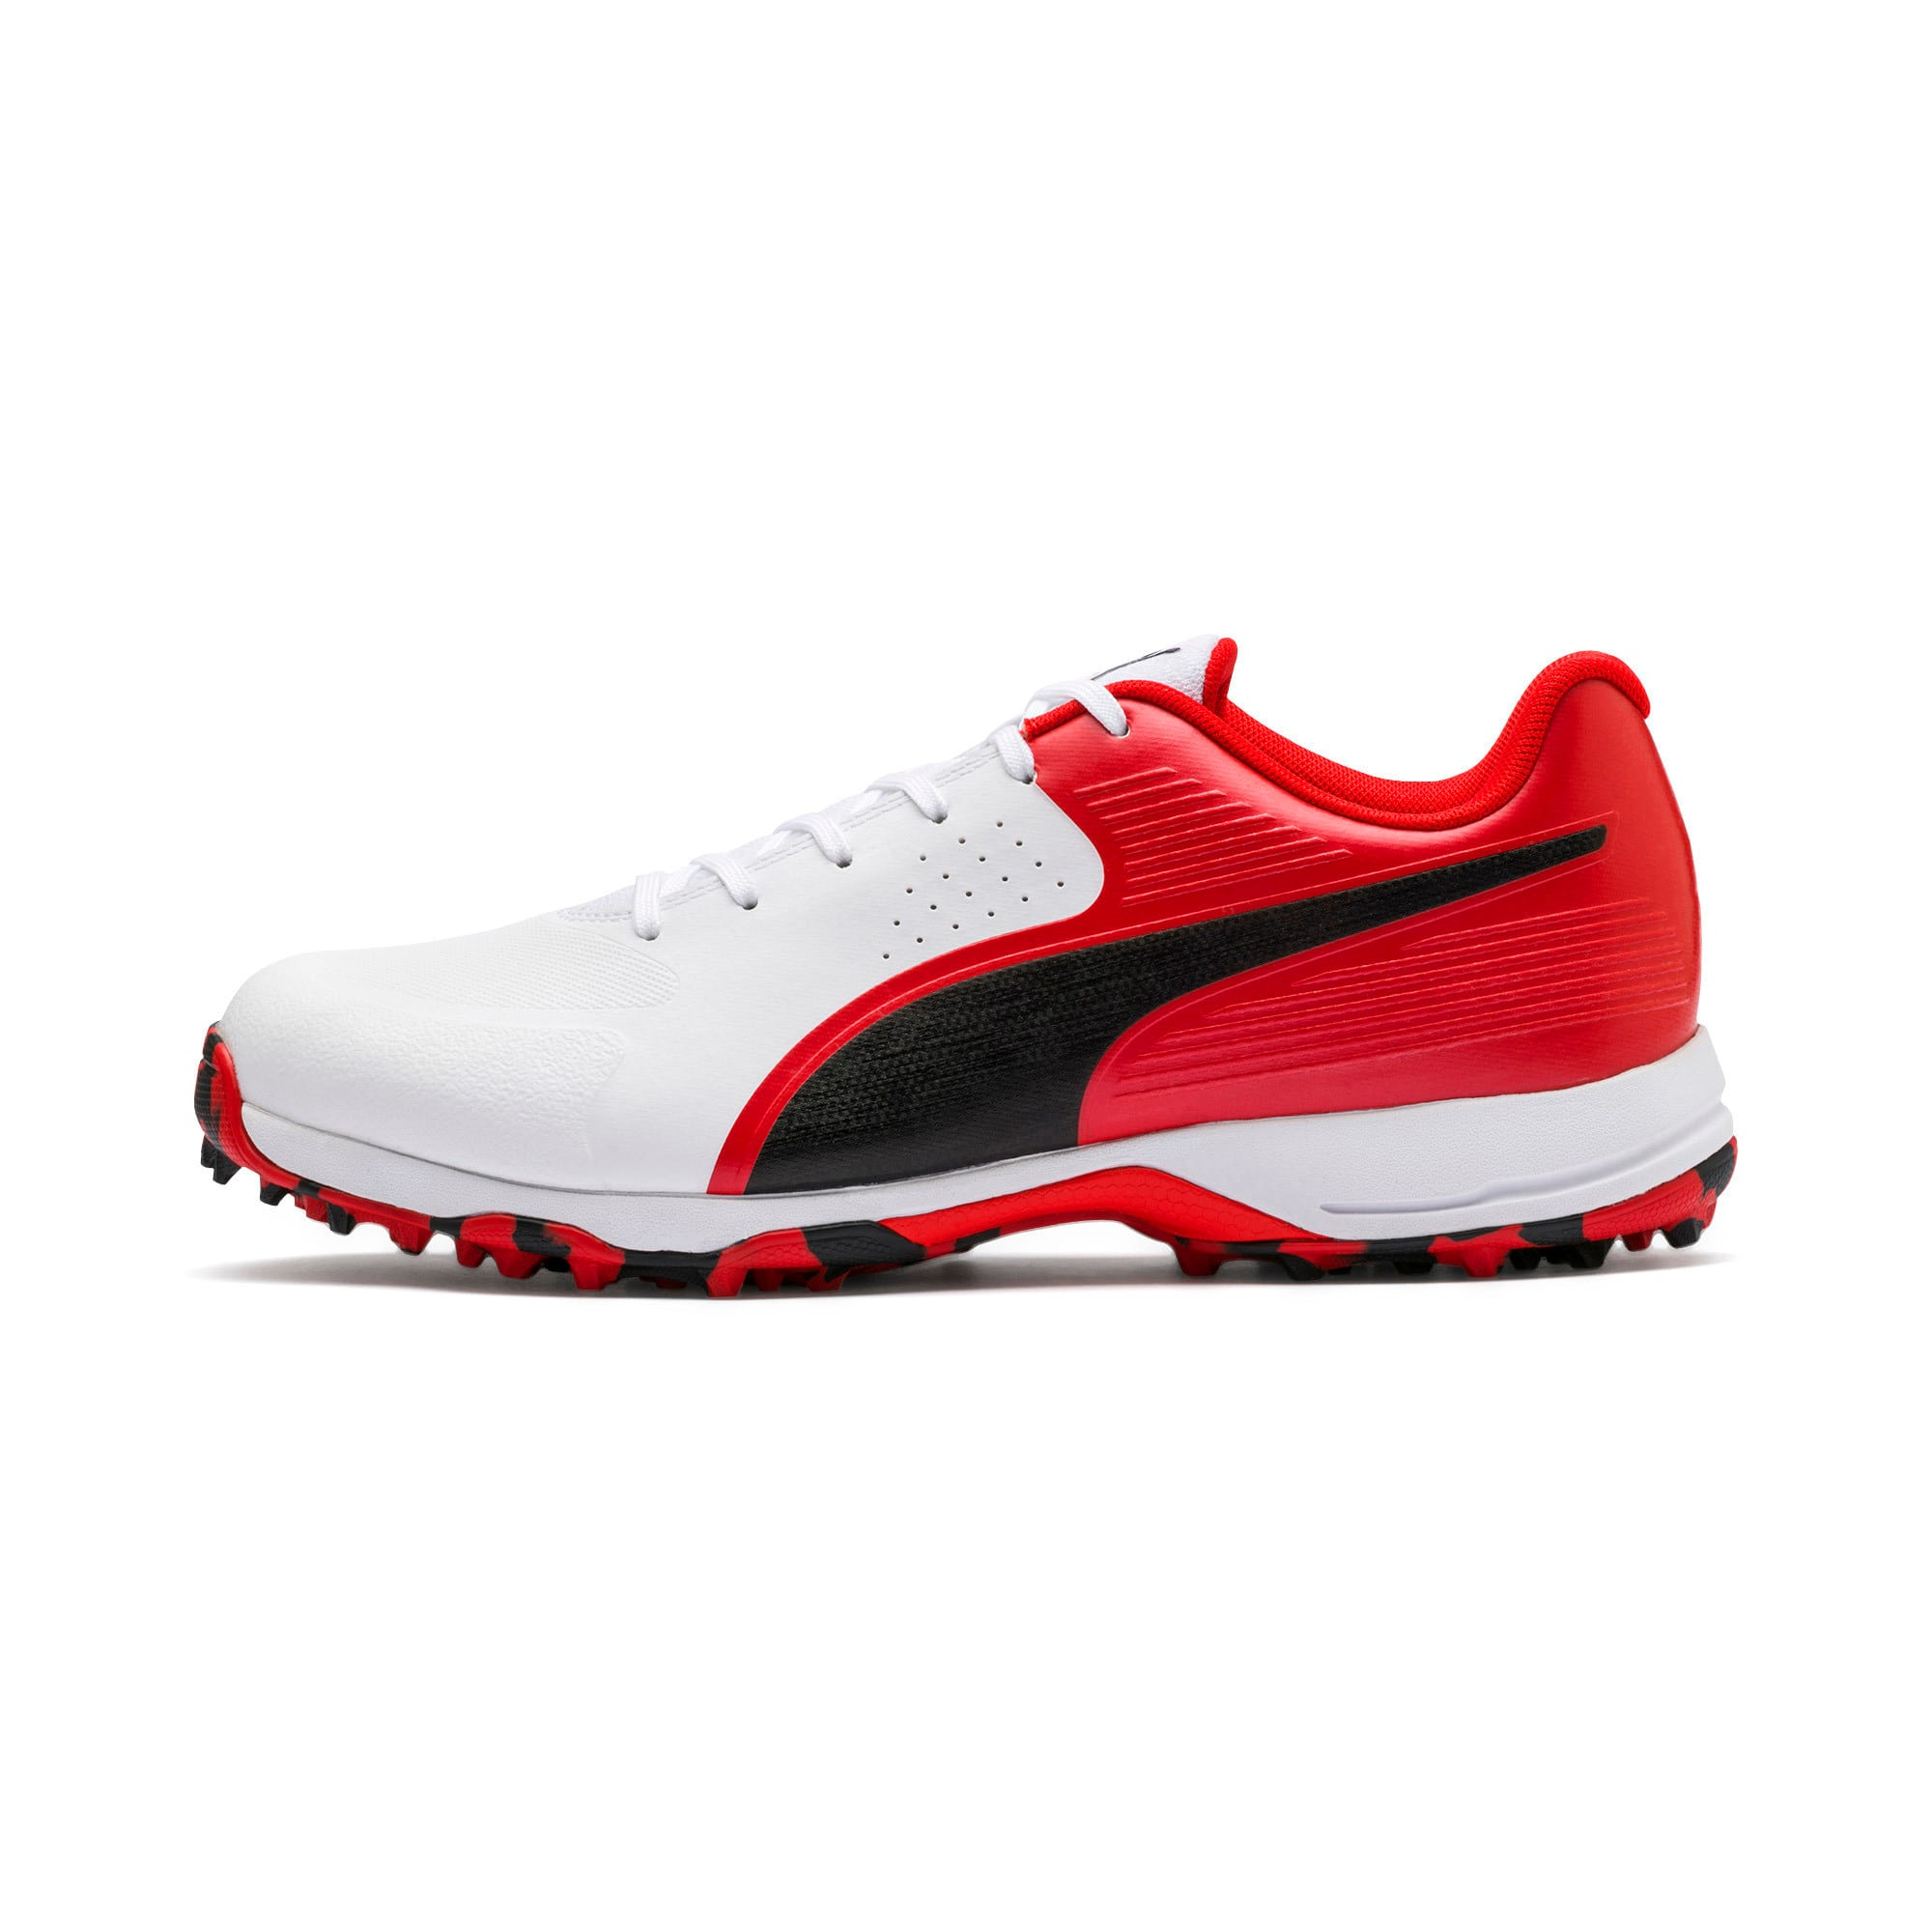 Thumbnail 1 of PUMA 19 FH Rubber Men's Cricket Shoes, White-Black-High Risk Red, medium-IND